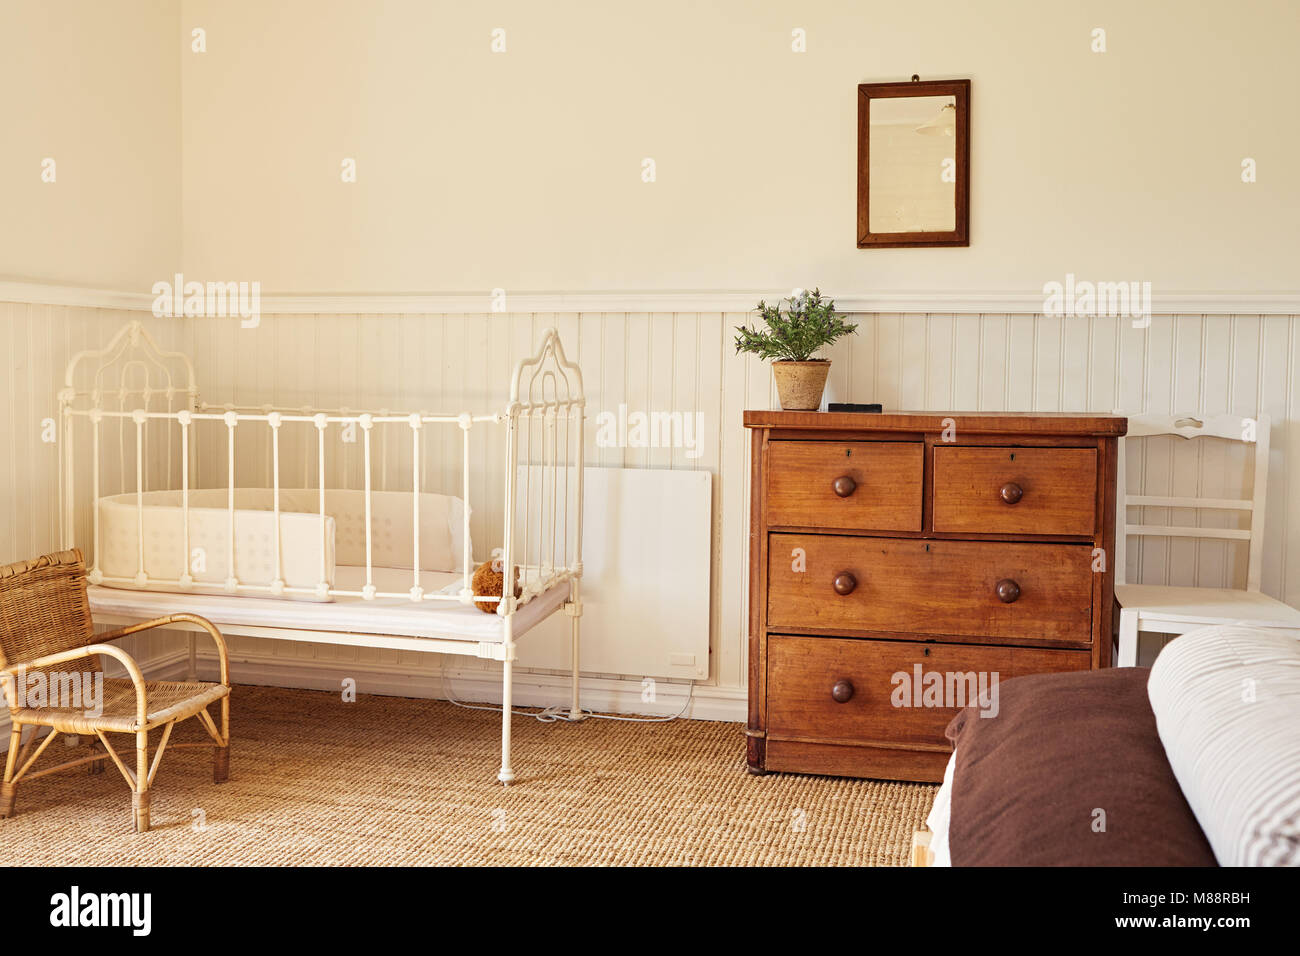 Interior of a bright master bedroom with a bed and baby\'s cot in a ...